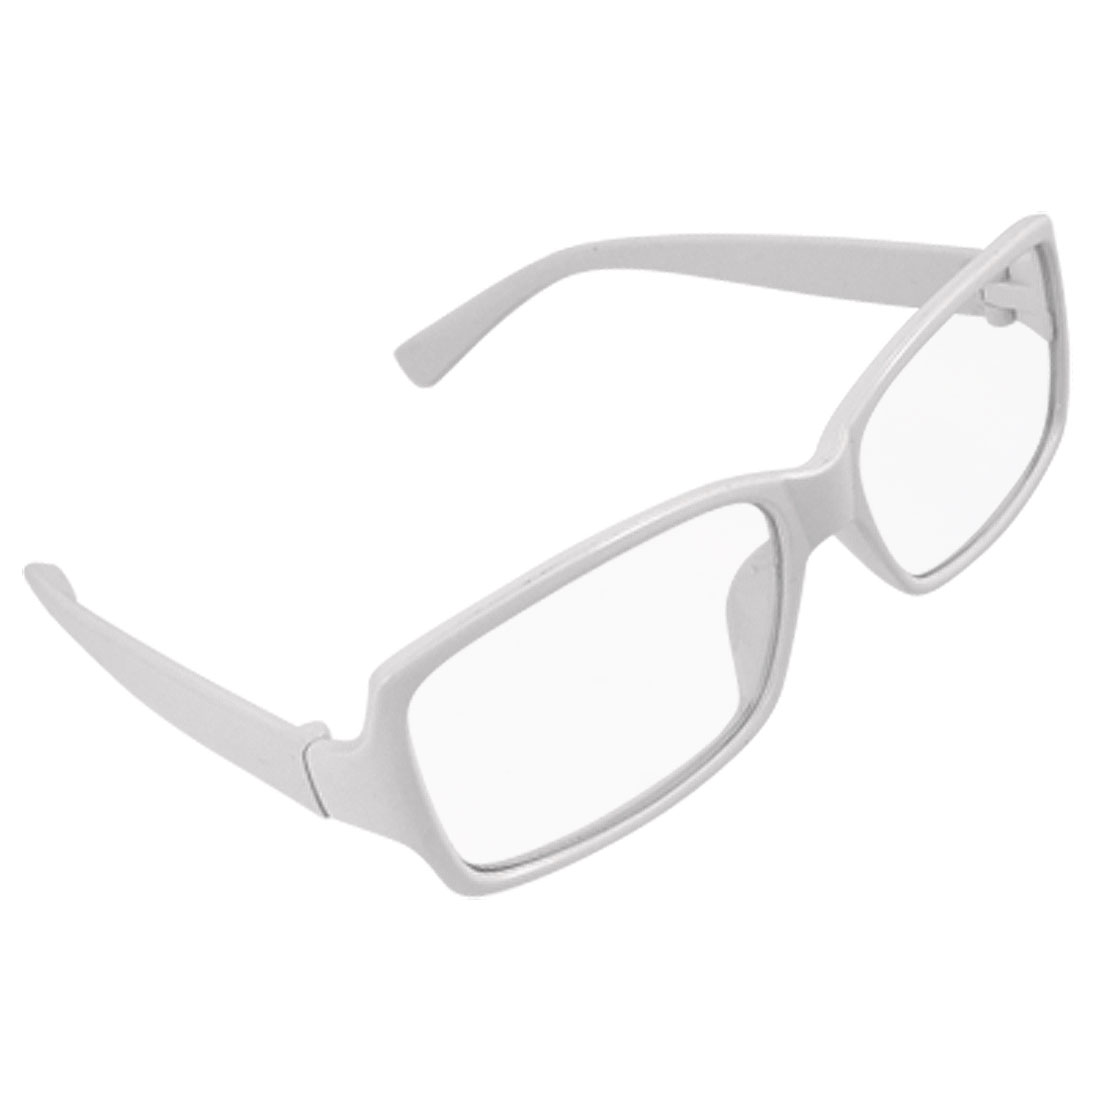 unique bargains white plastic frame rectangle clear lens unisex glasses emdto walmartcom